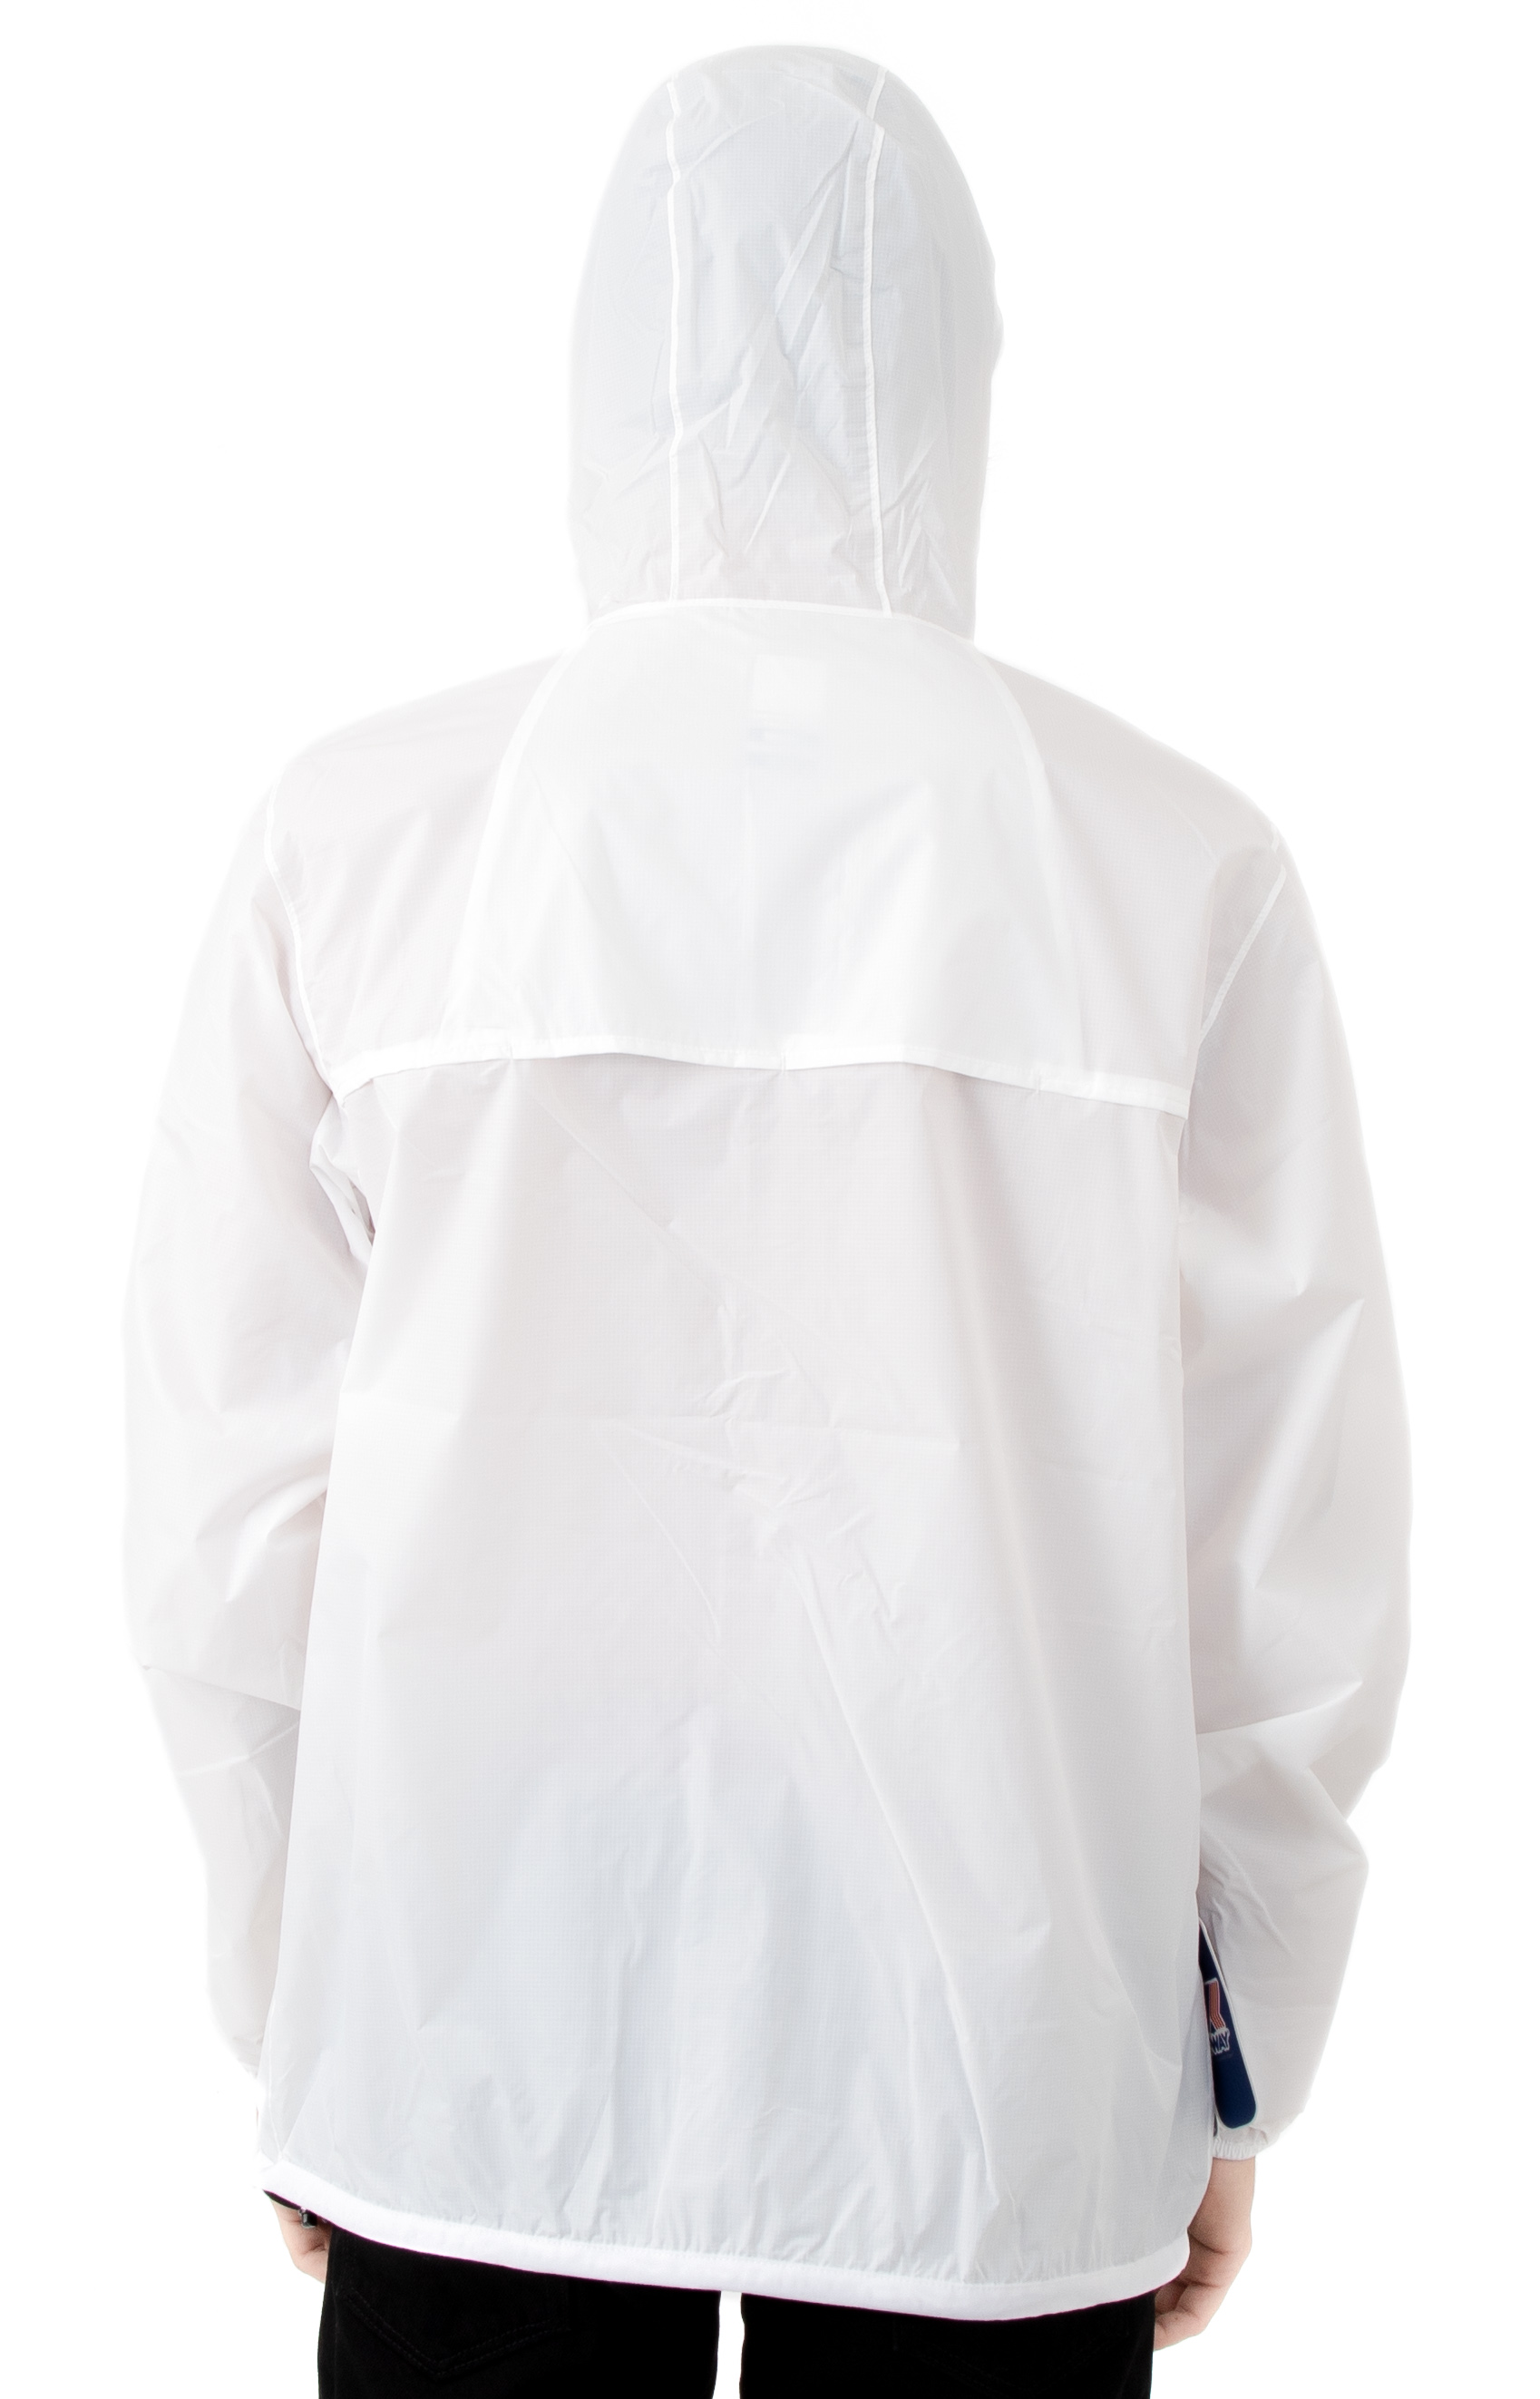 Le Vrai 3.0 Claude Jacket - White  3